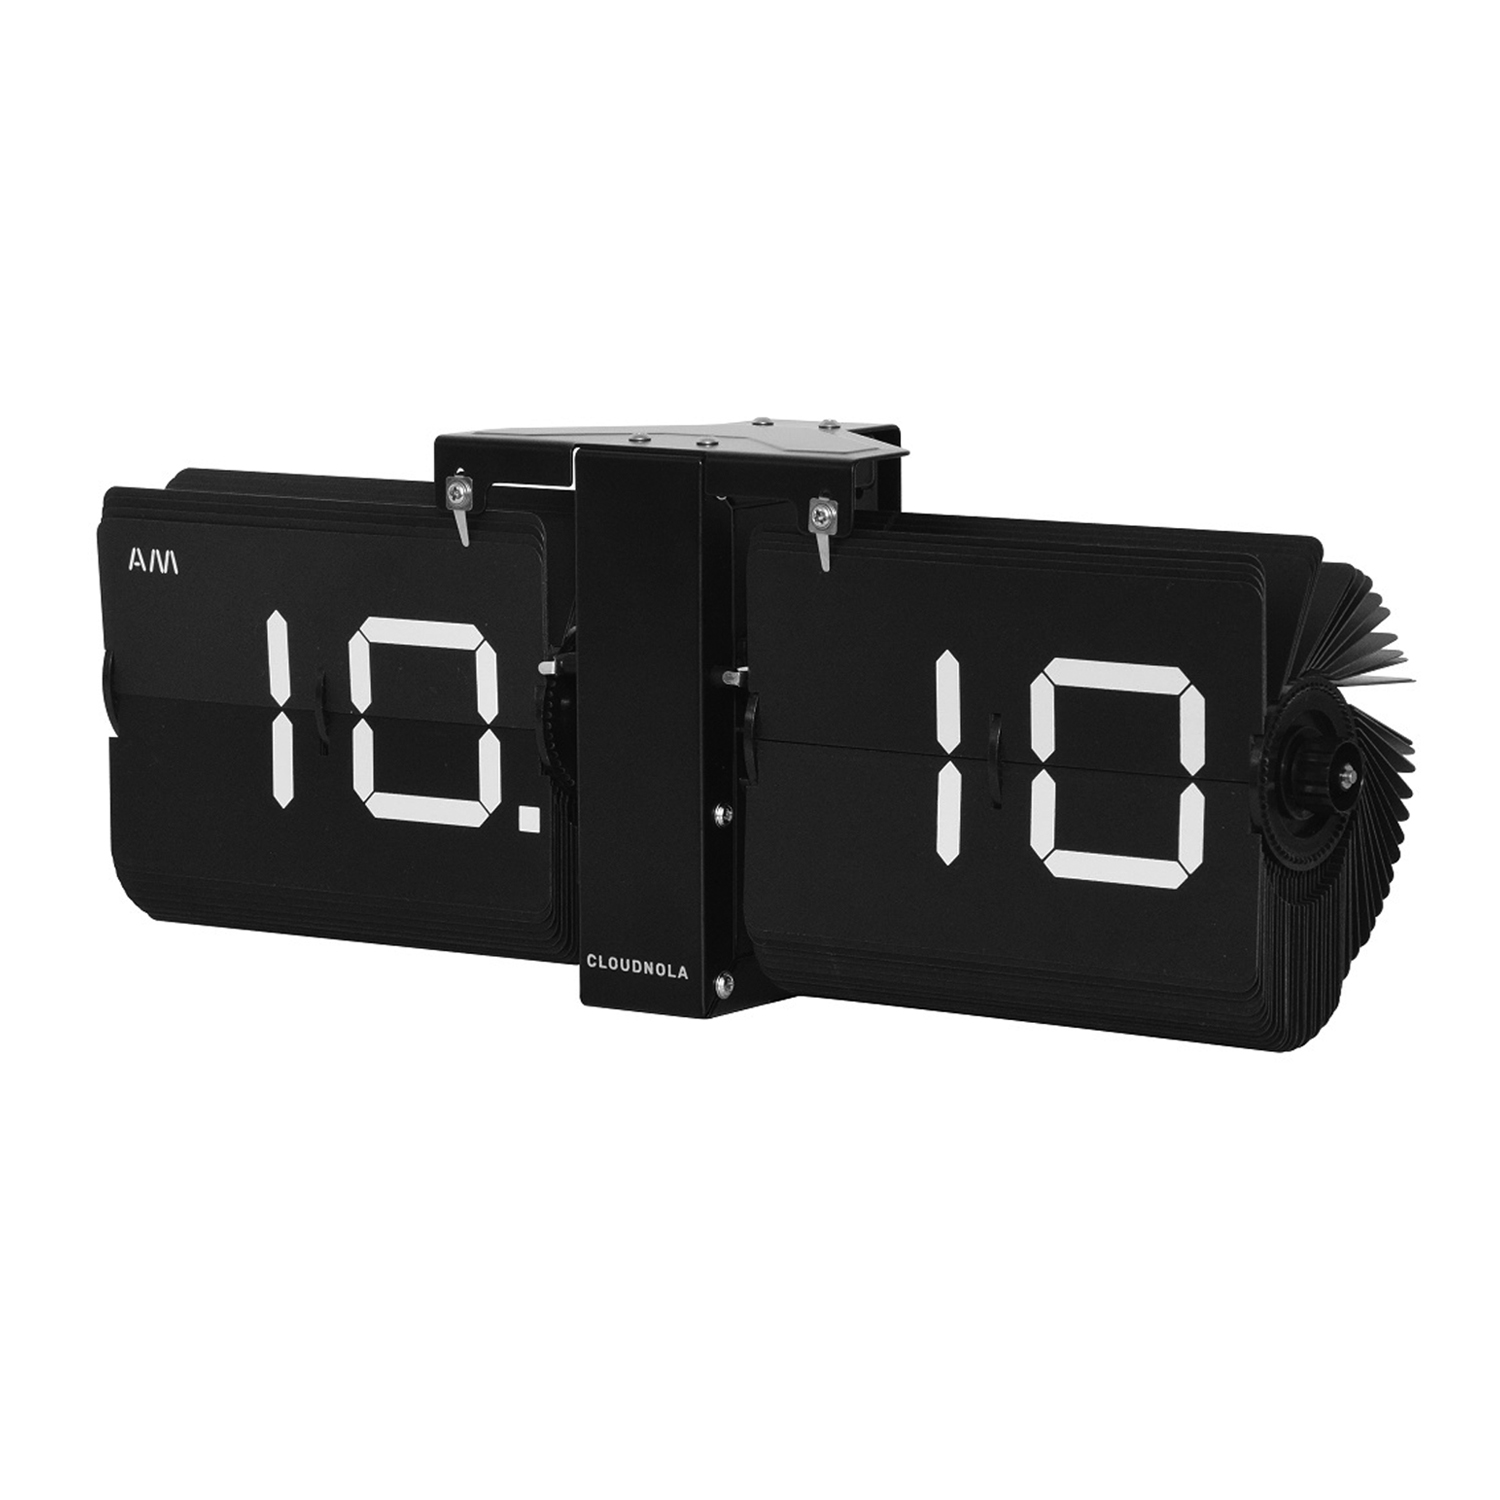 Cloudnola Flip Clock black/black